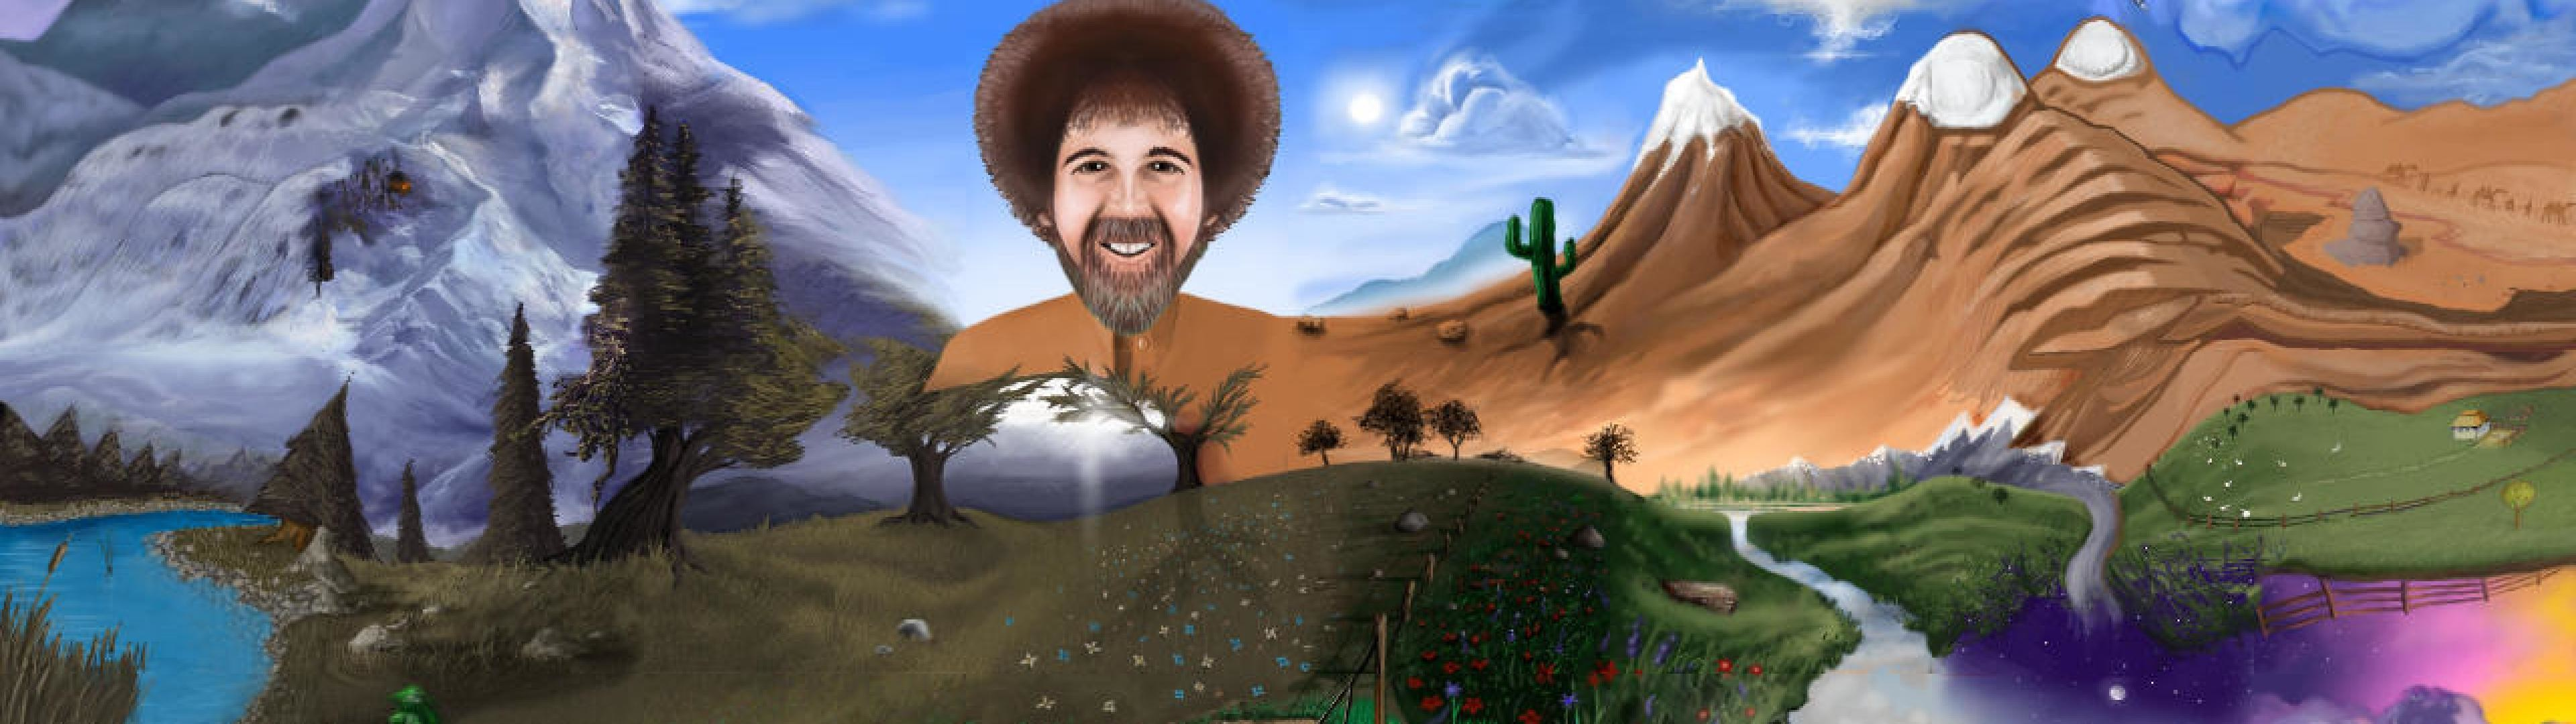 Res: 3840x1080, bob ross Ultra or Dual High Definition 2560x1440  3840x2160